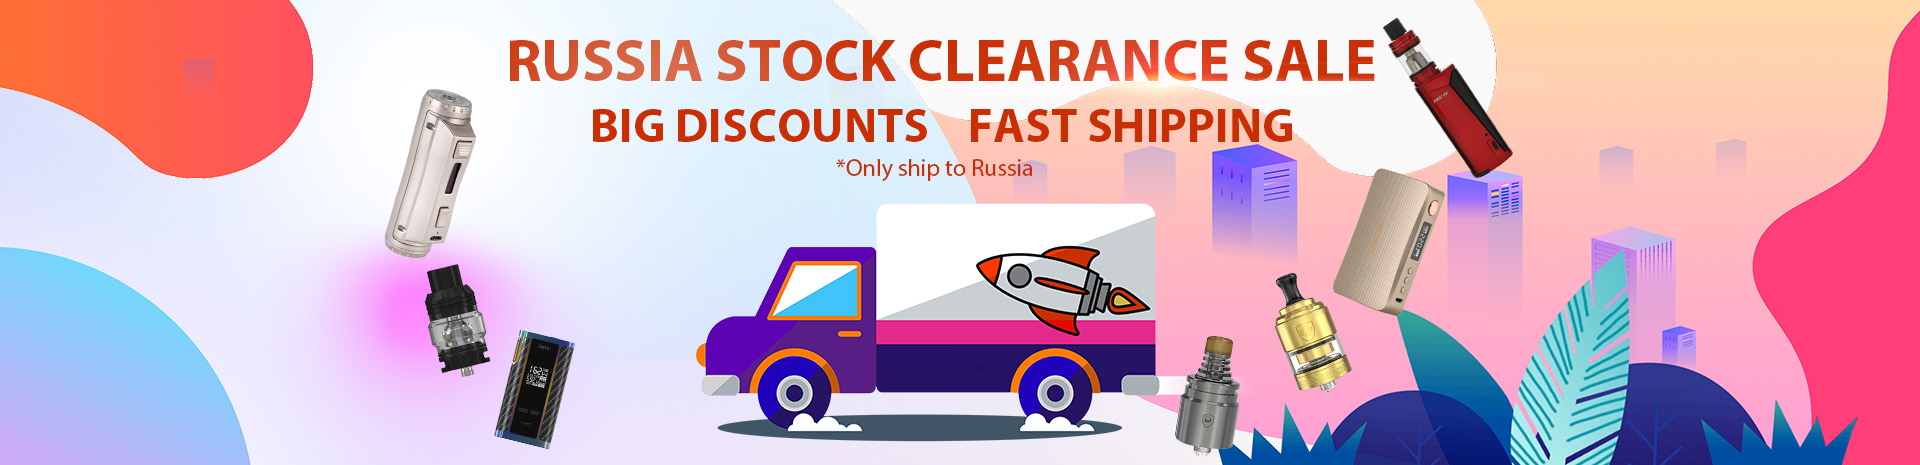 RUSSIA STOCK CLEARANCE SALE Banner